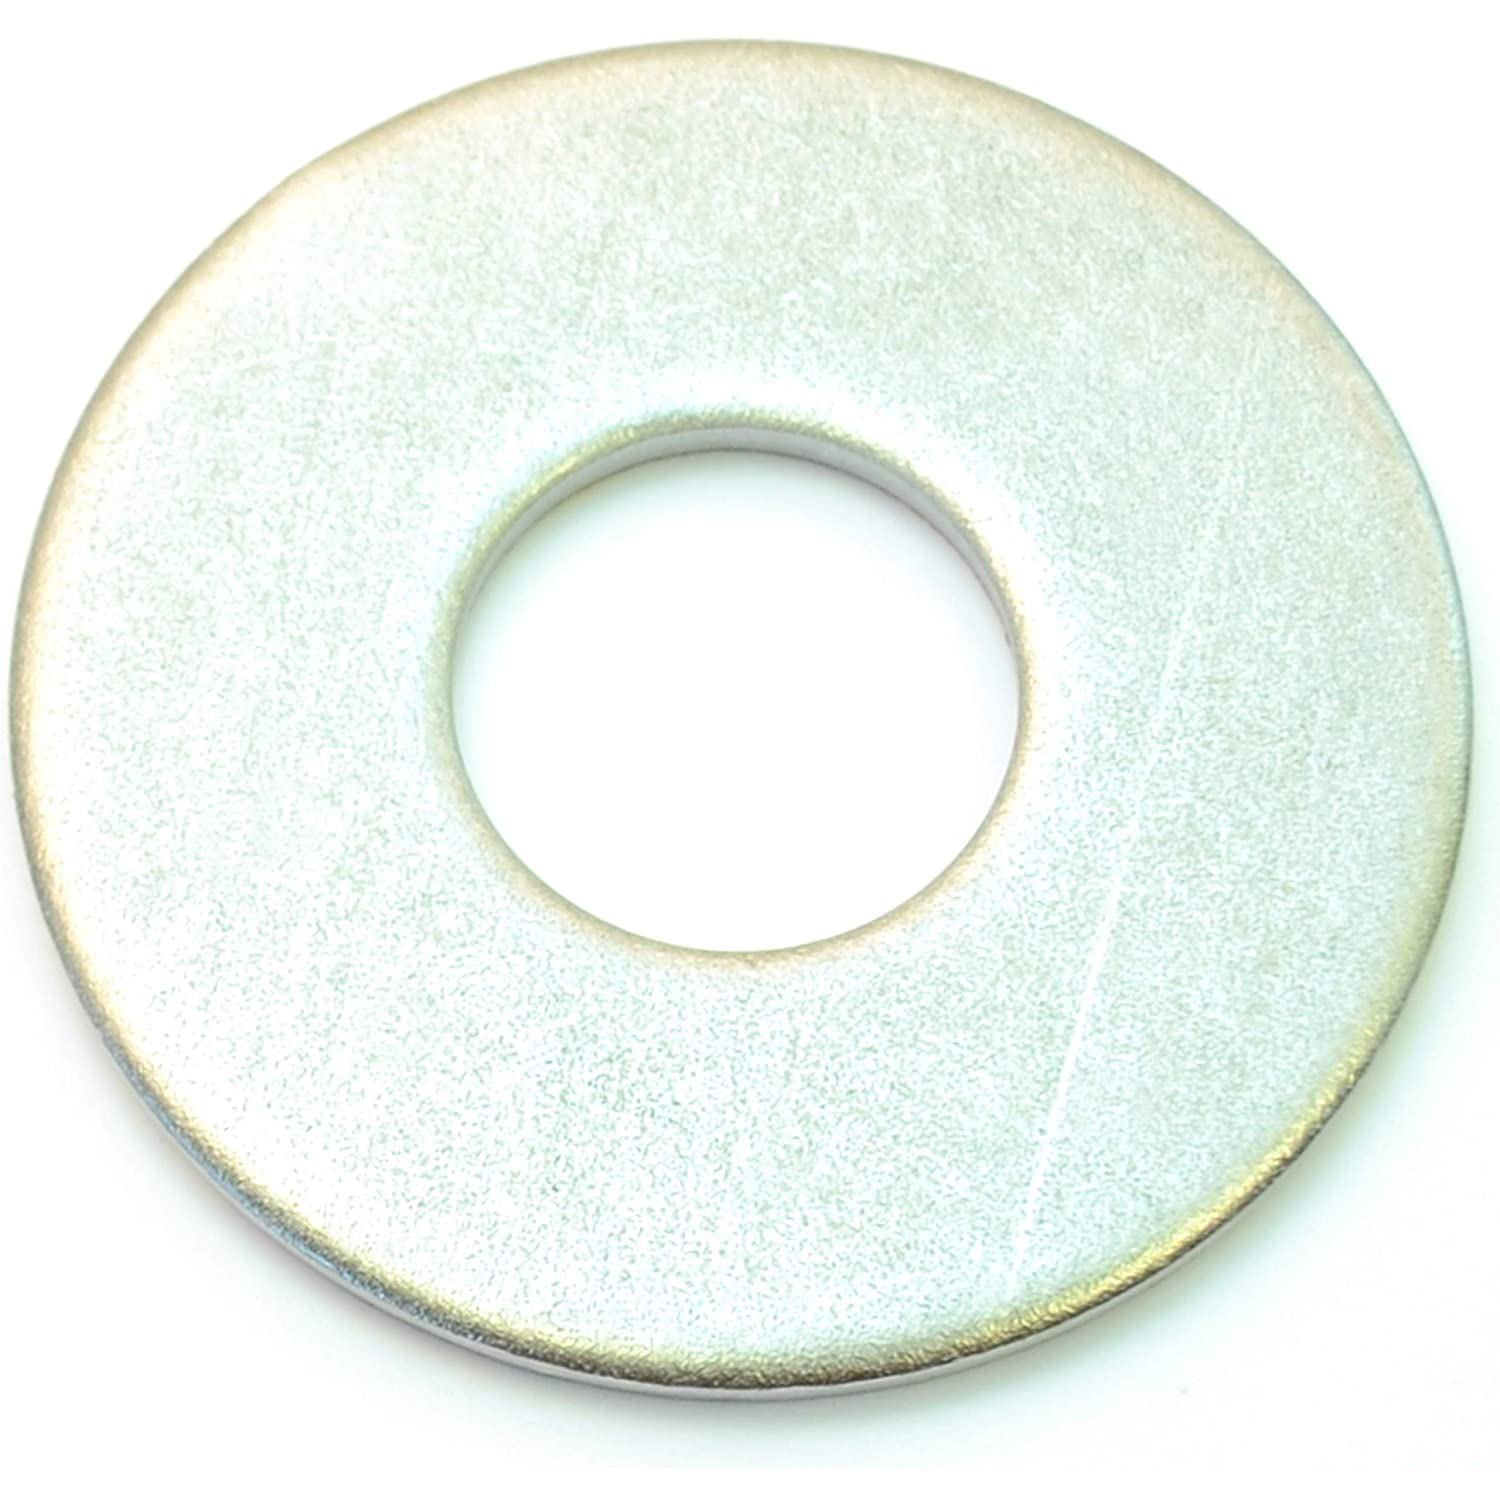 Hard to Find Fastener 7 Fender Washers 20mm x 60mm Piece 4